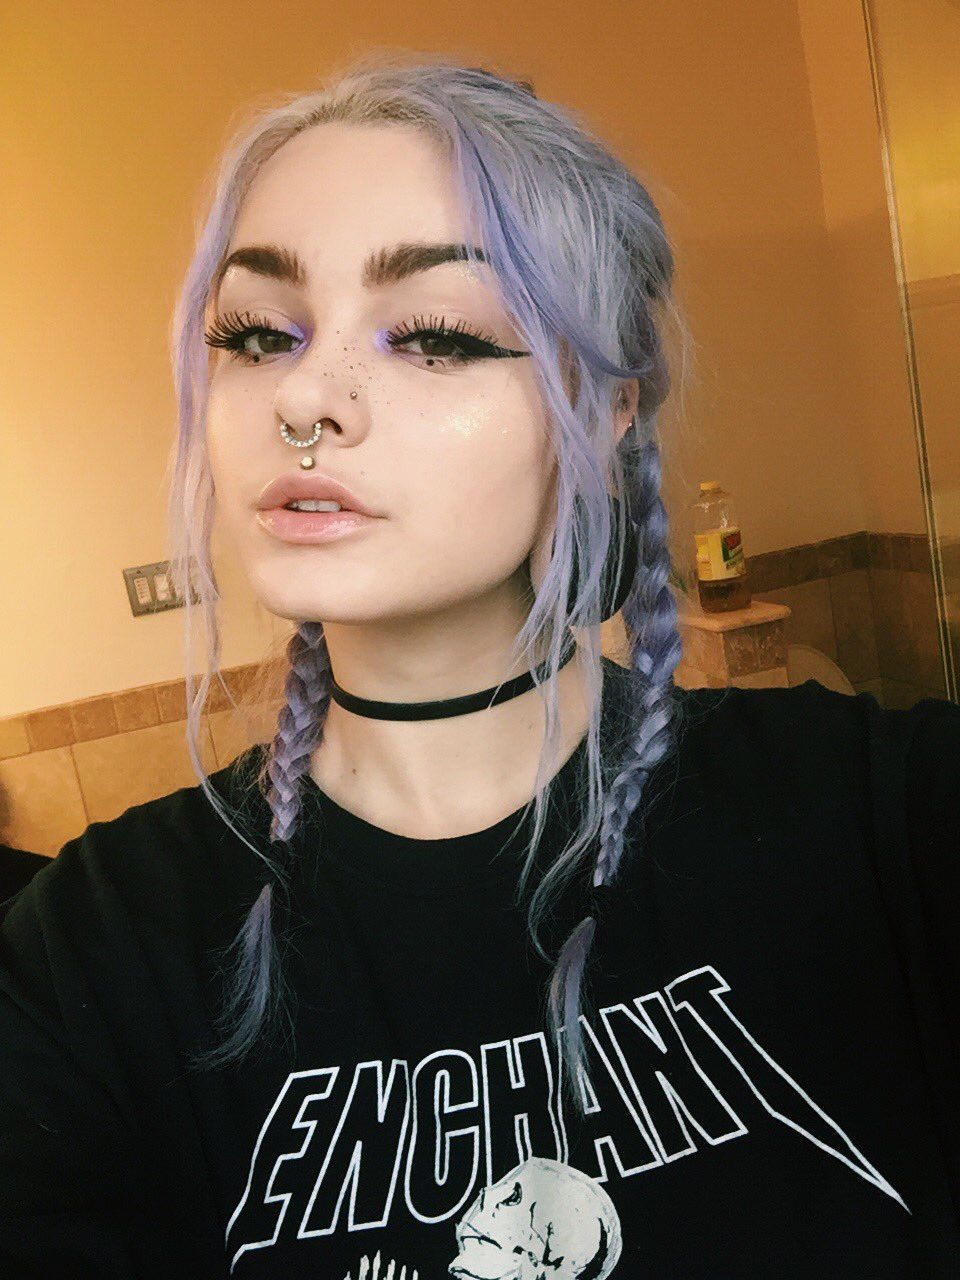 Pin By Celeste Maxwell On Hair In 2019 Edgy Makeup Grunge -   11 edgy hair 2019 ideas